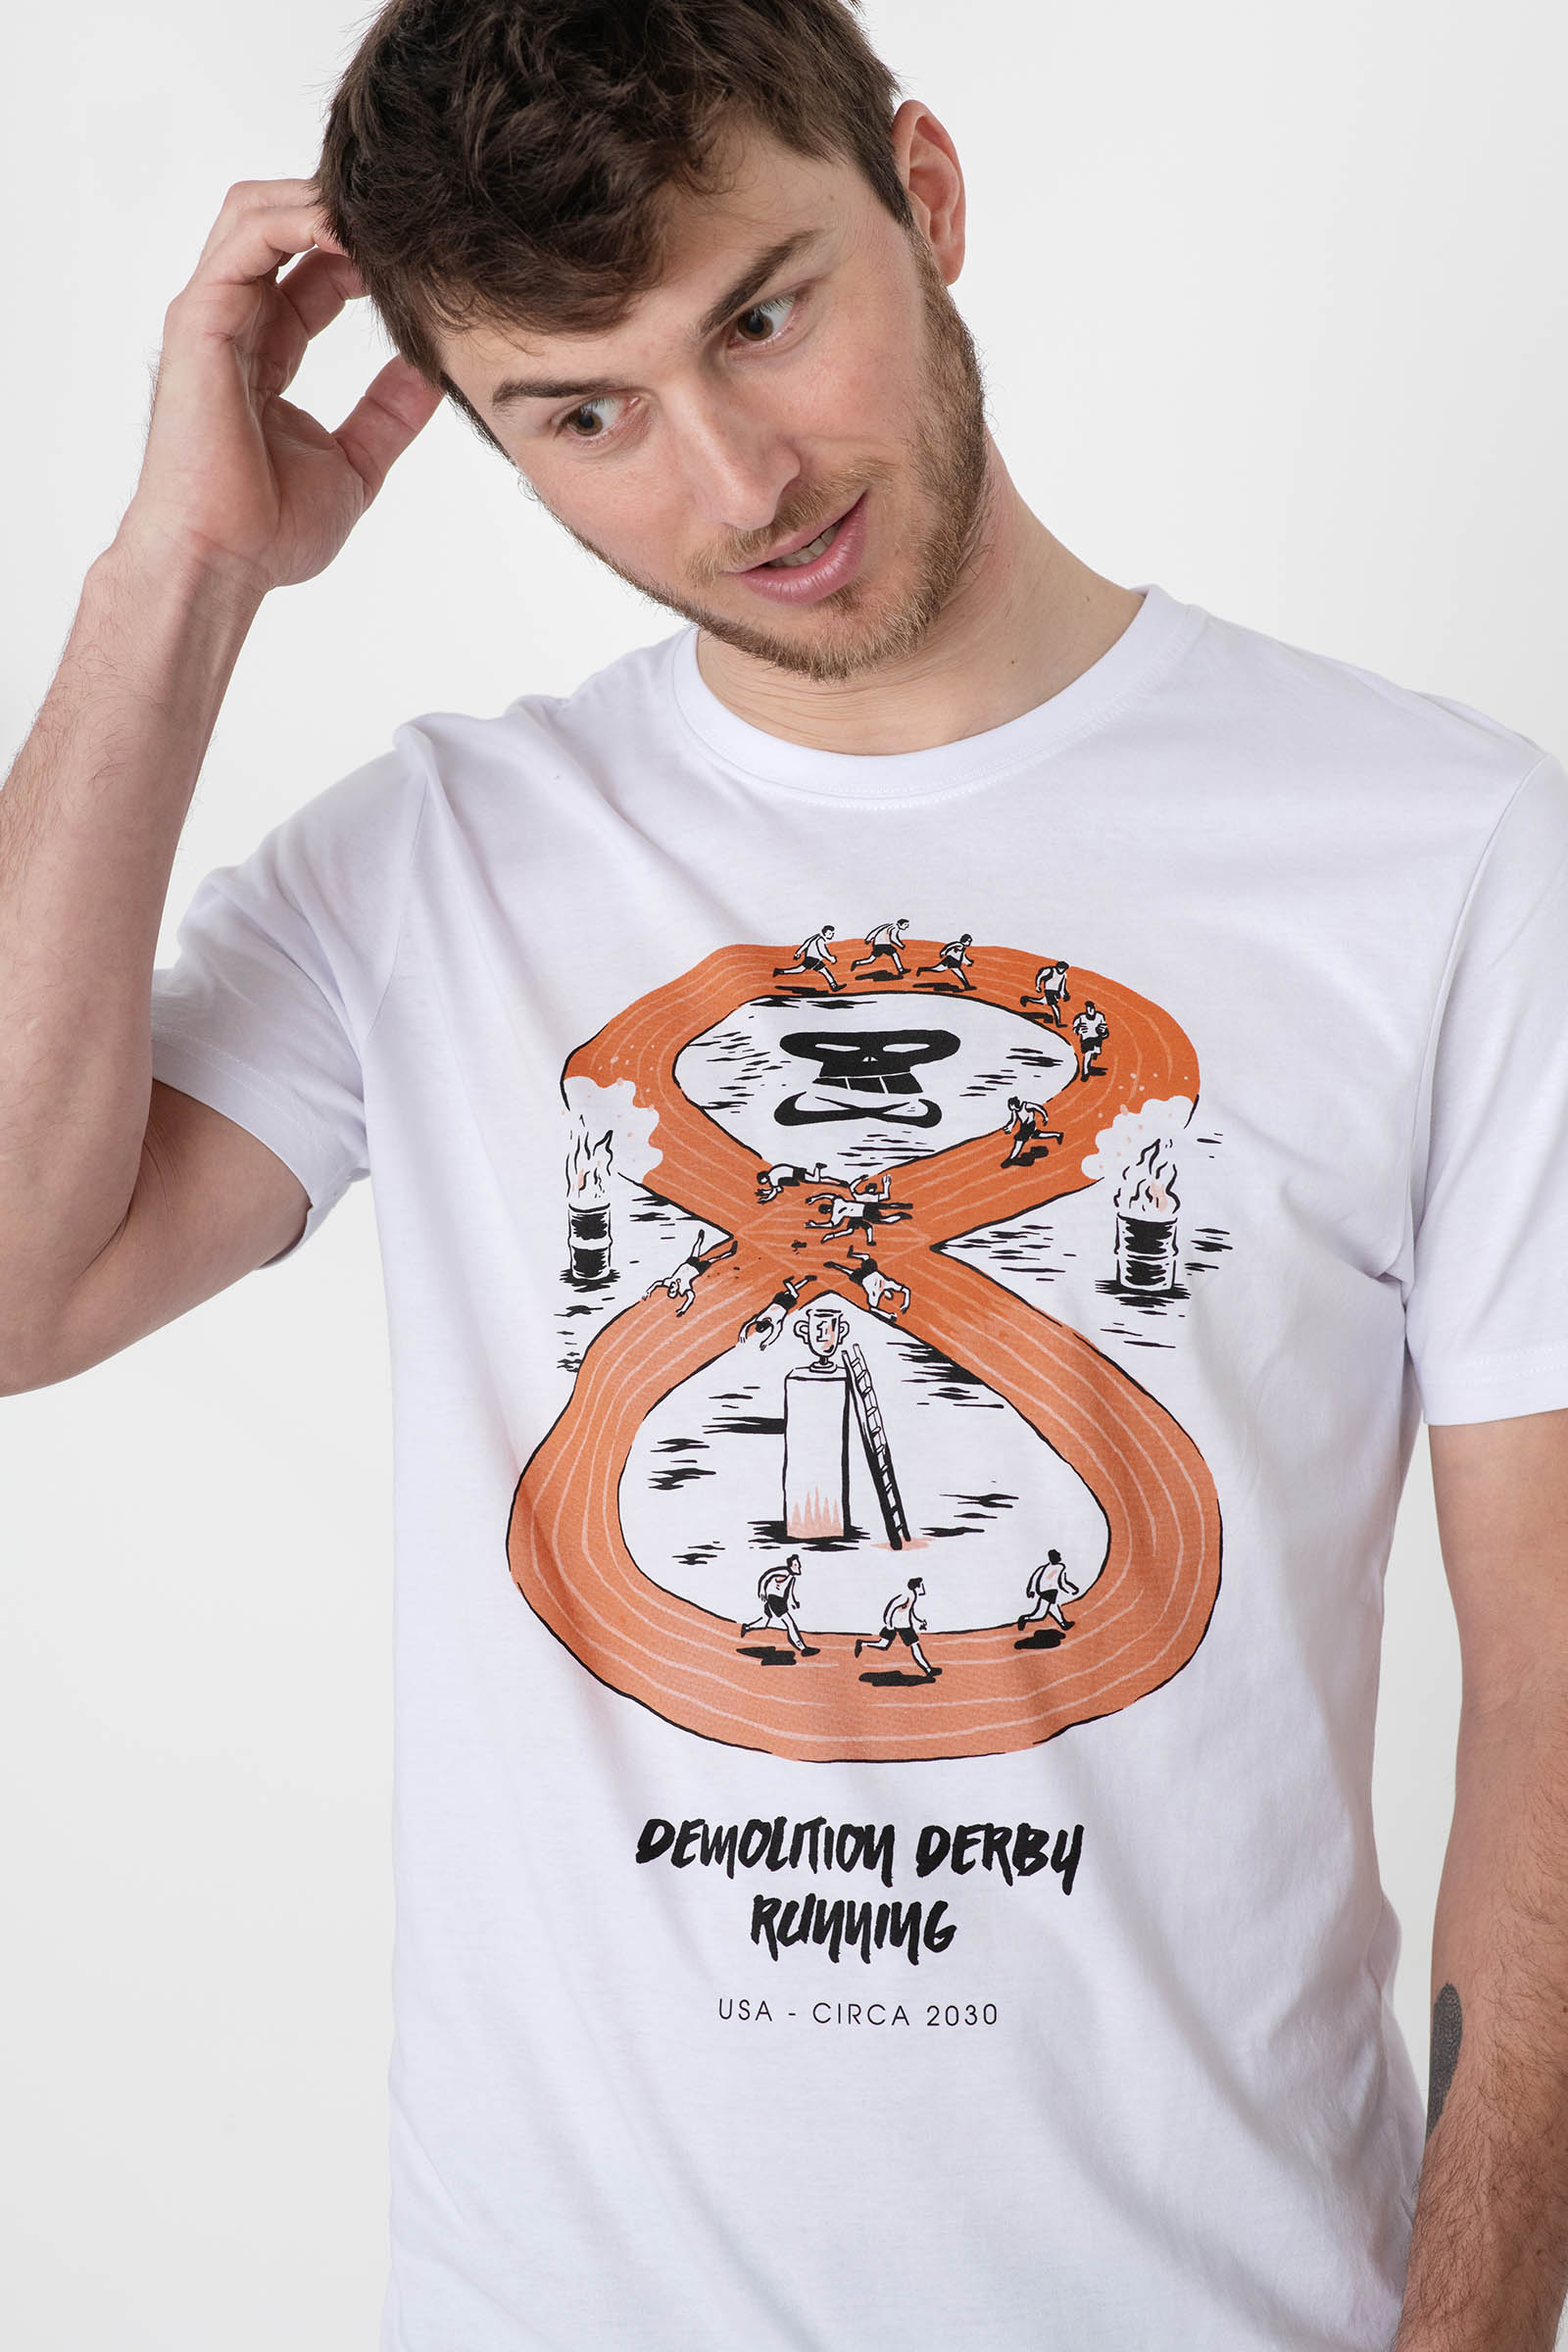 t-shirt for men Demolition derby white